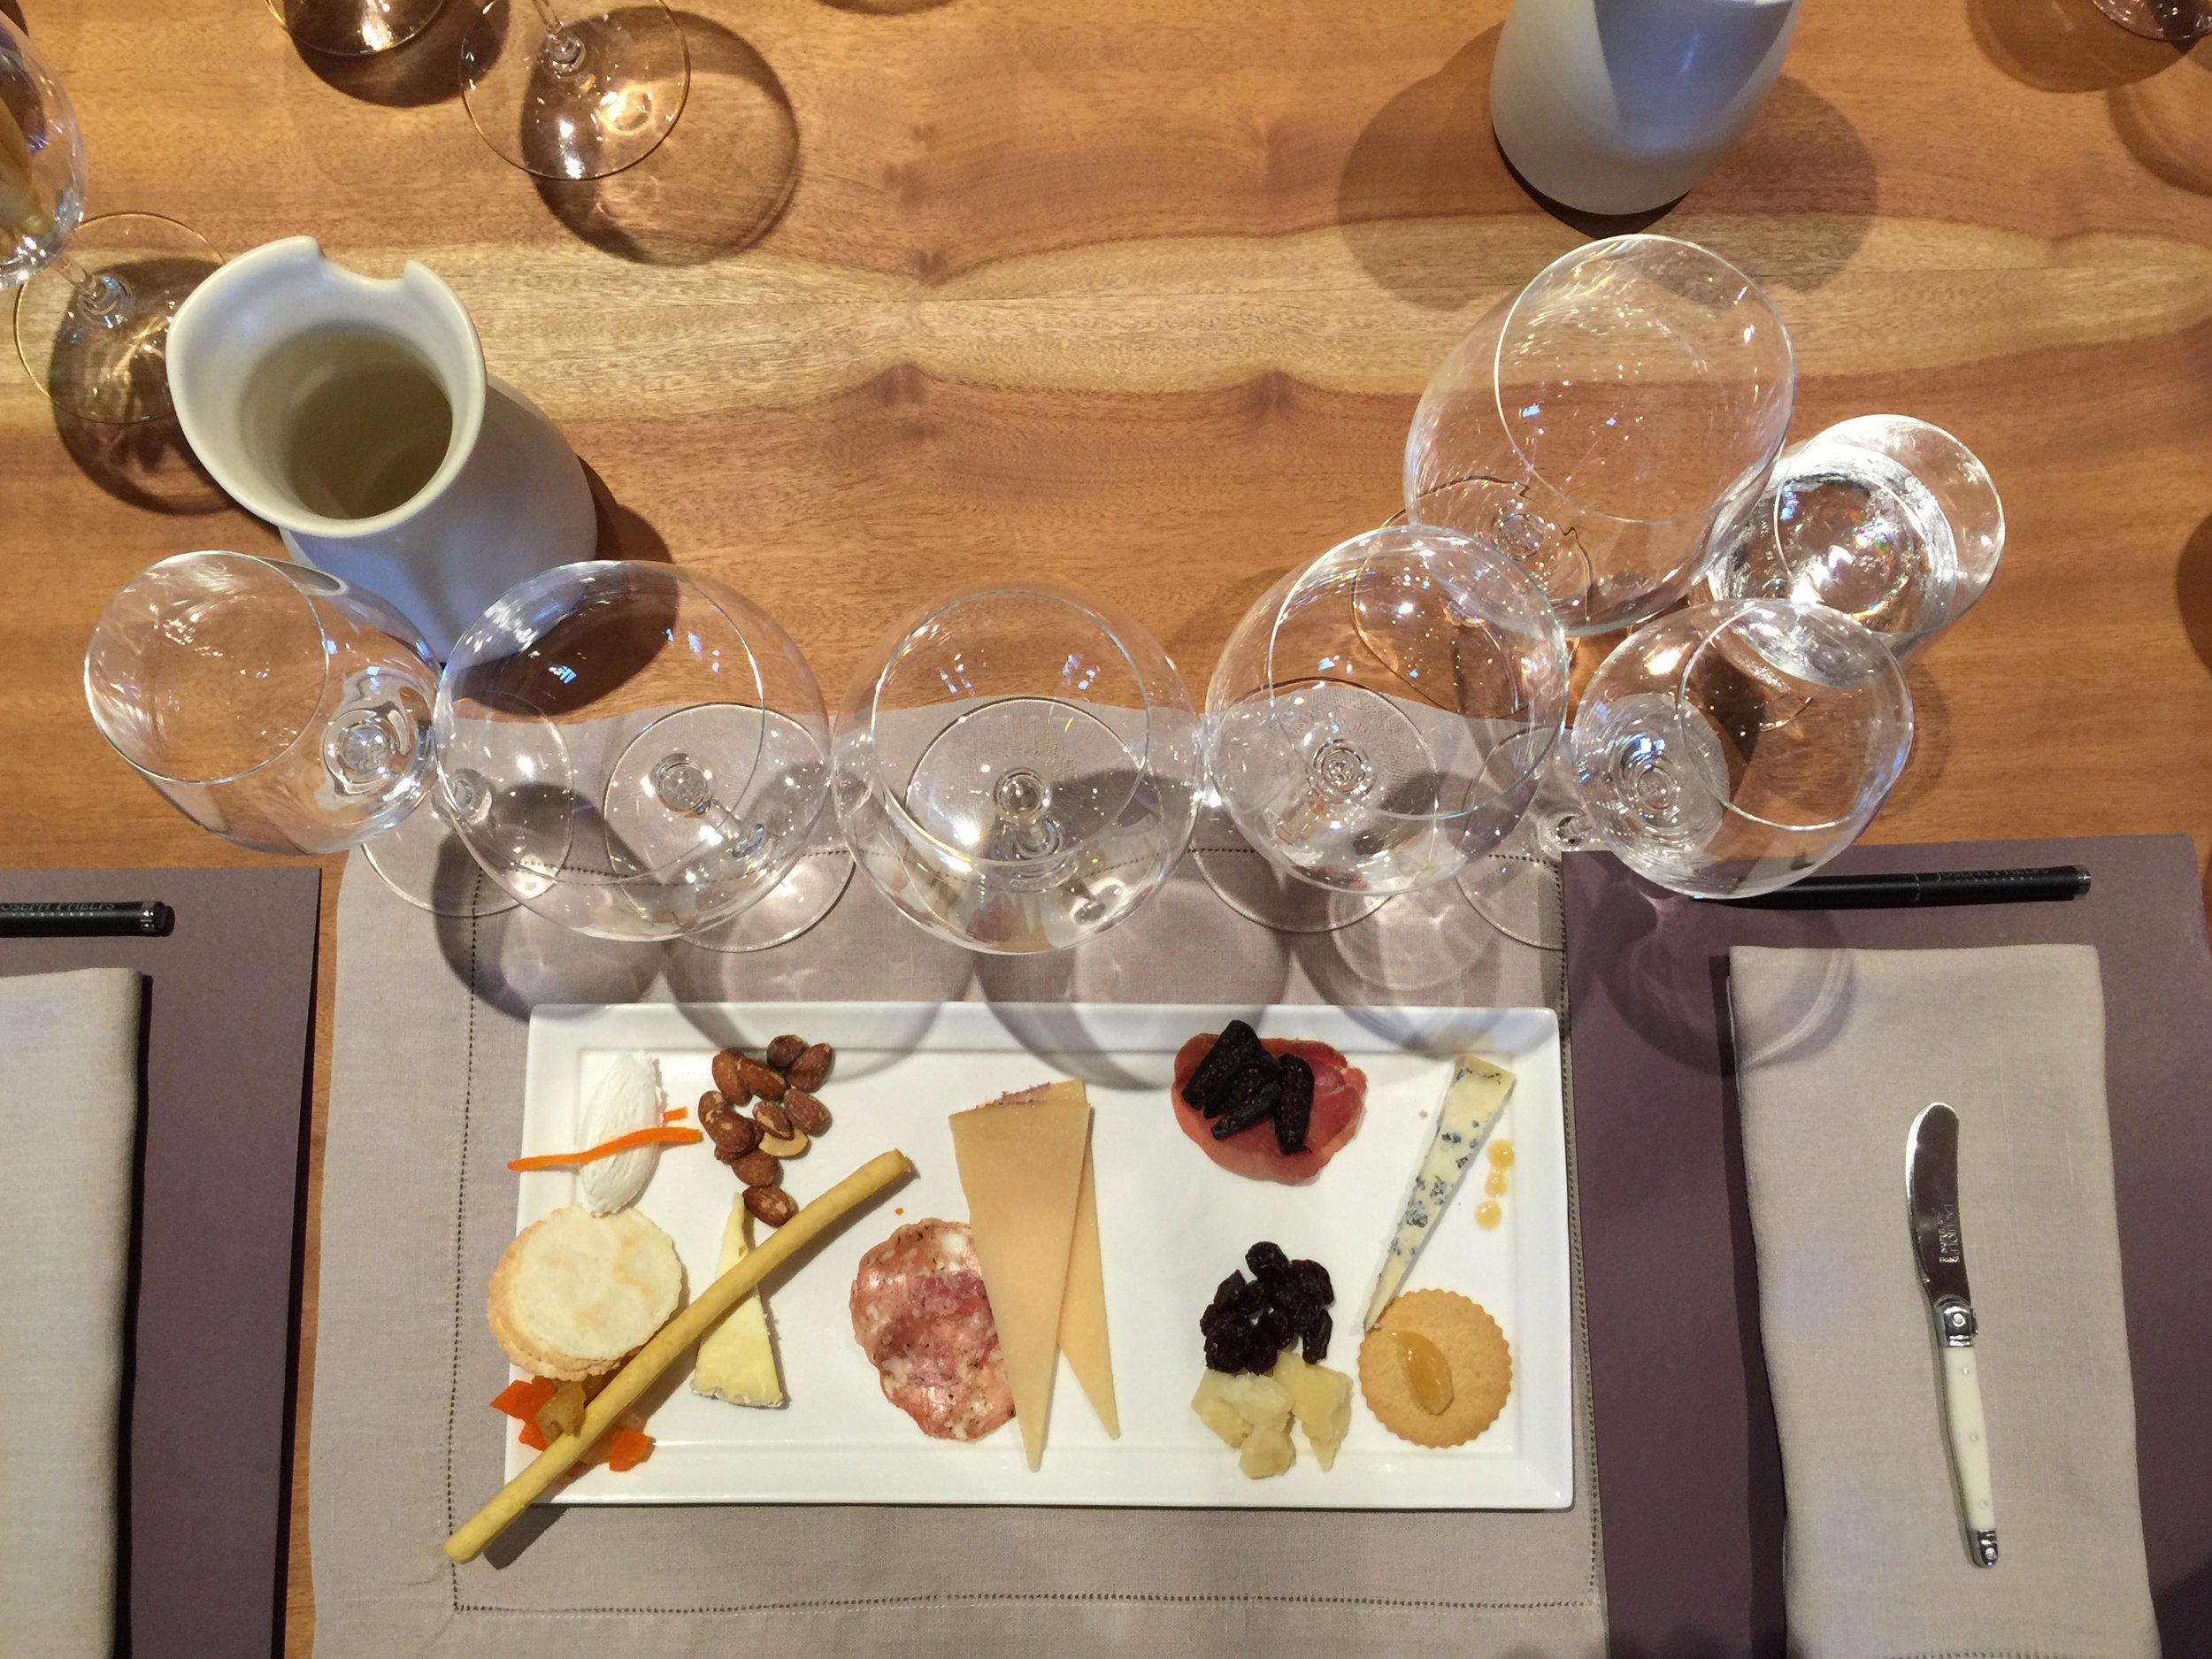 The wines were paired with the perfect selection of cheeses.